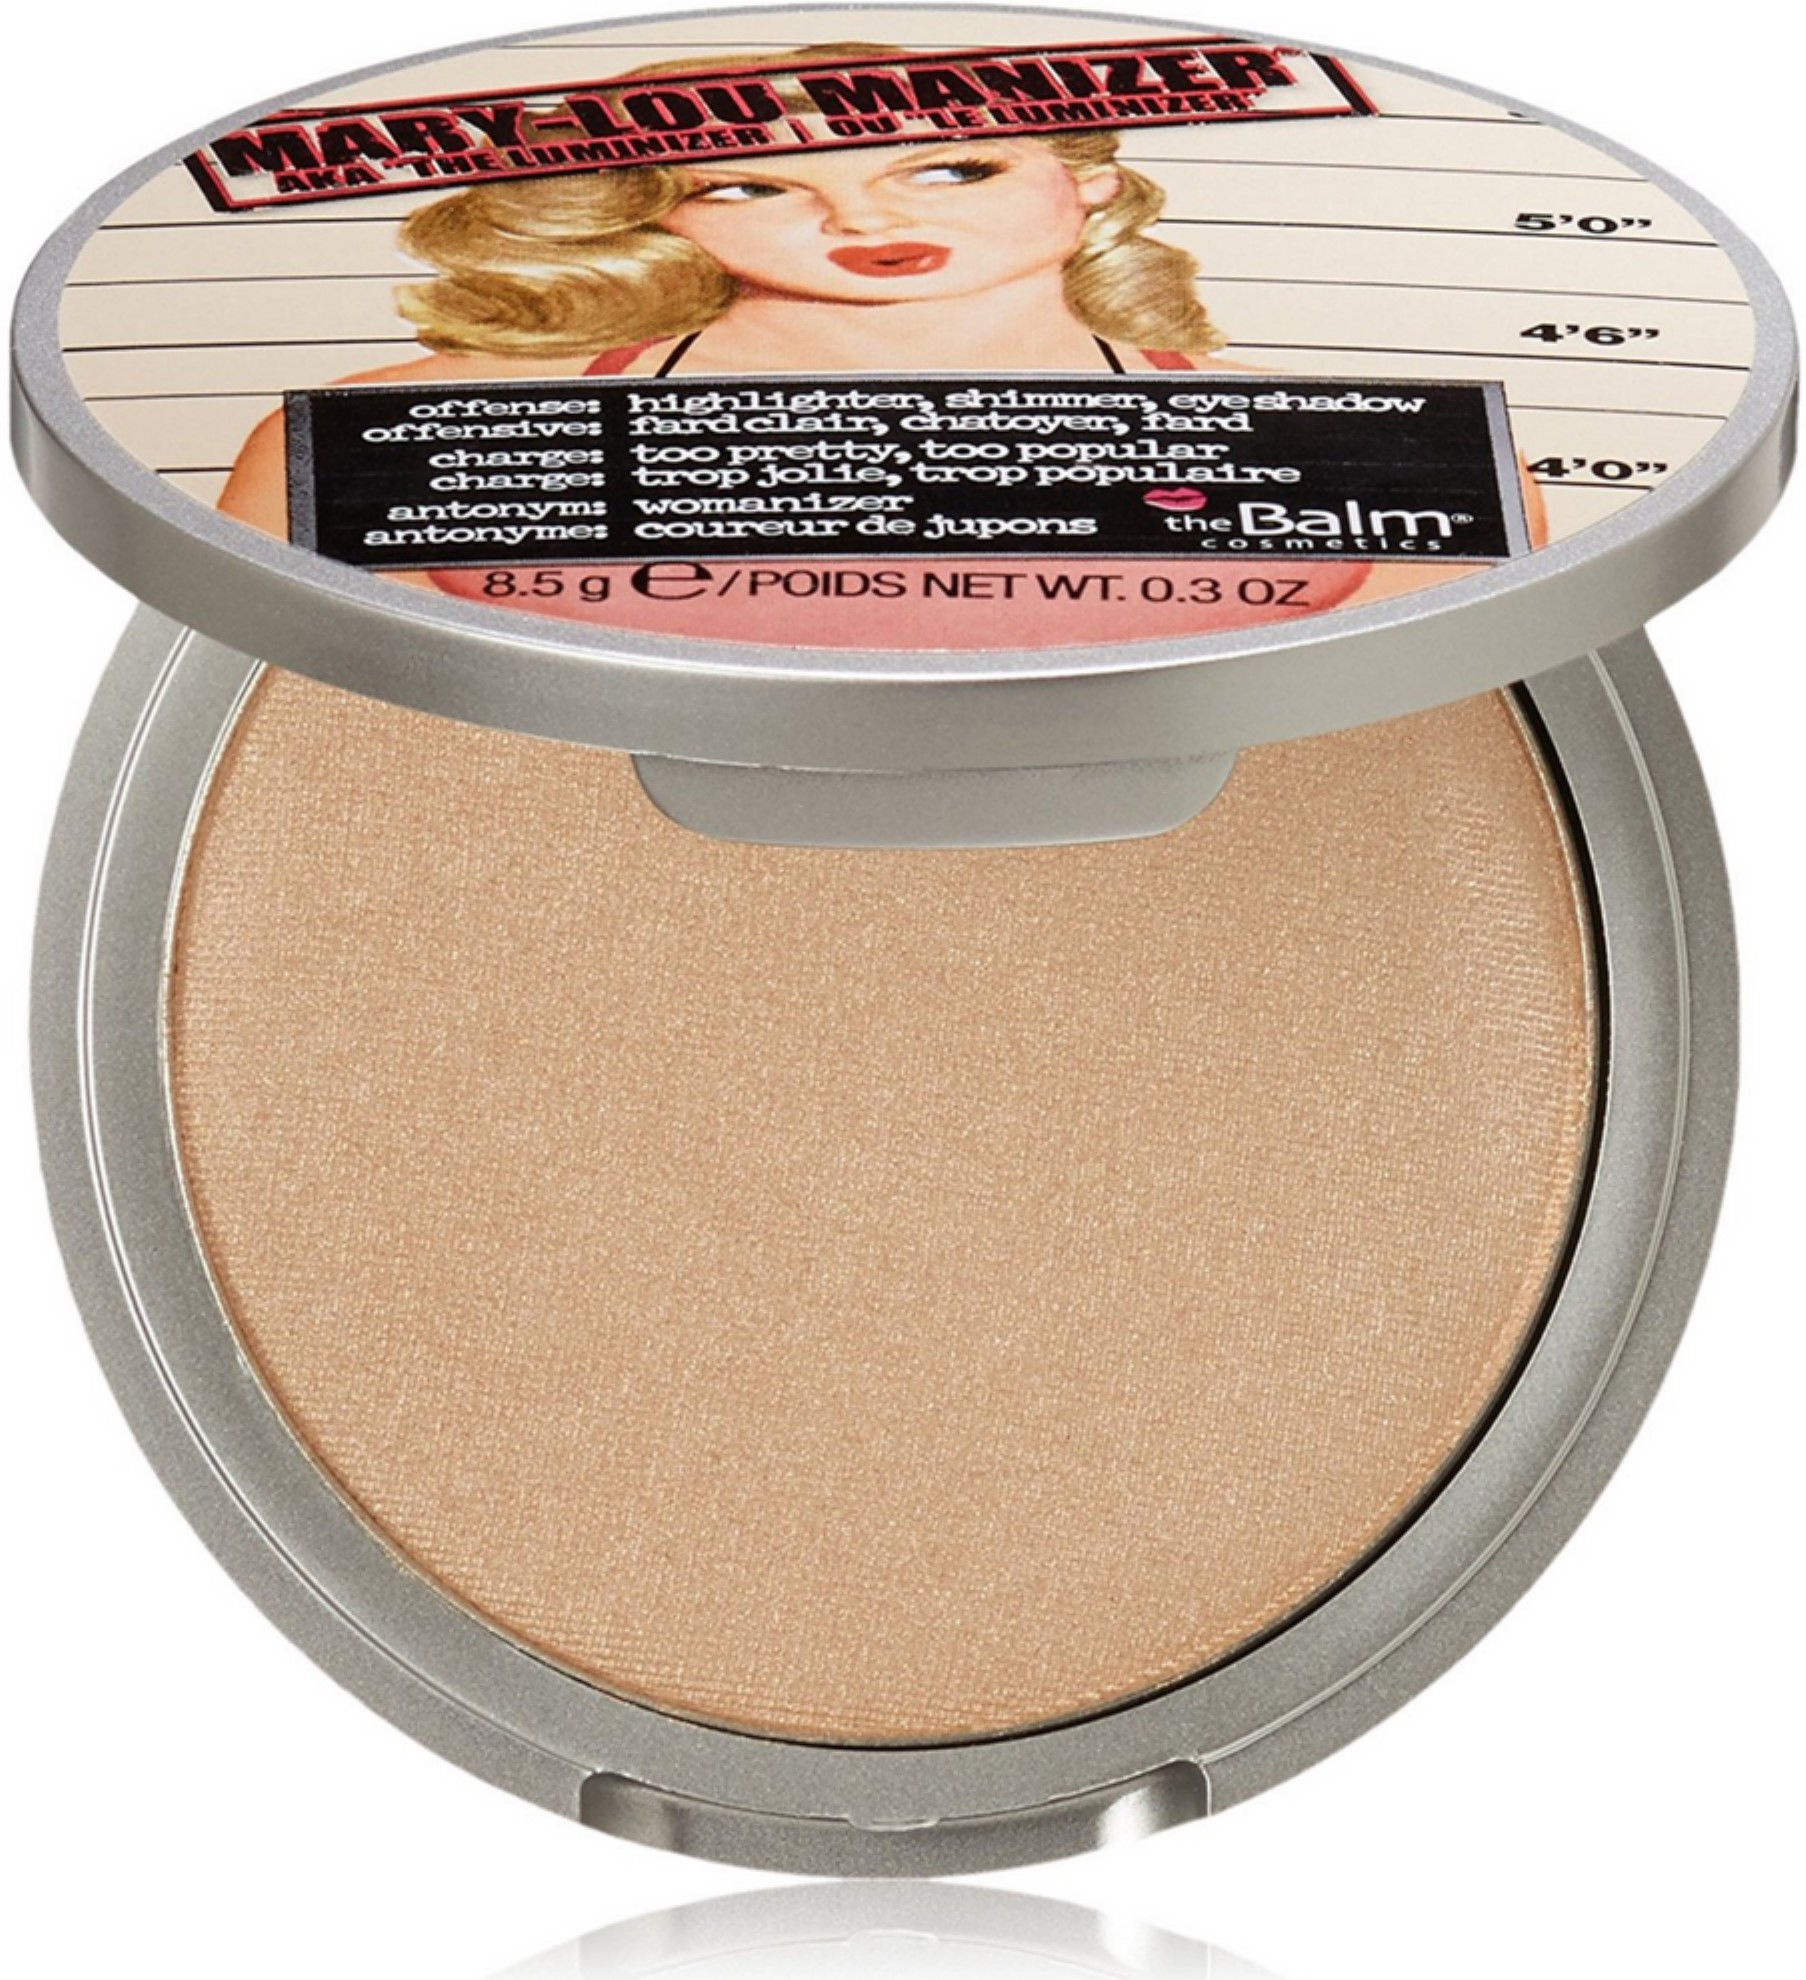 theBalm Mary-Lou Manizer Highlighter, Shadow & Shimmer 0.30 oz